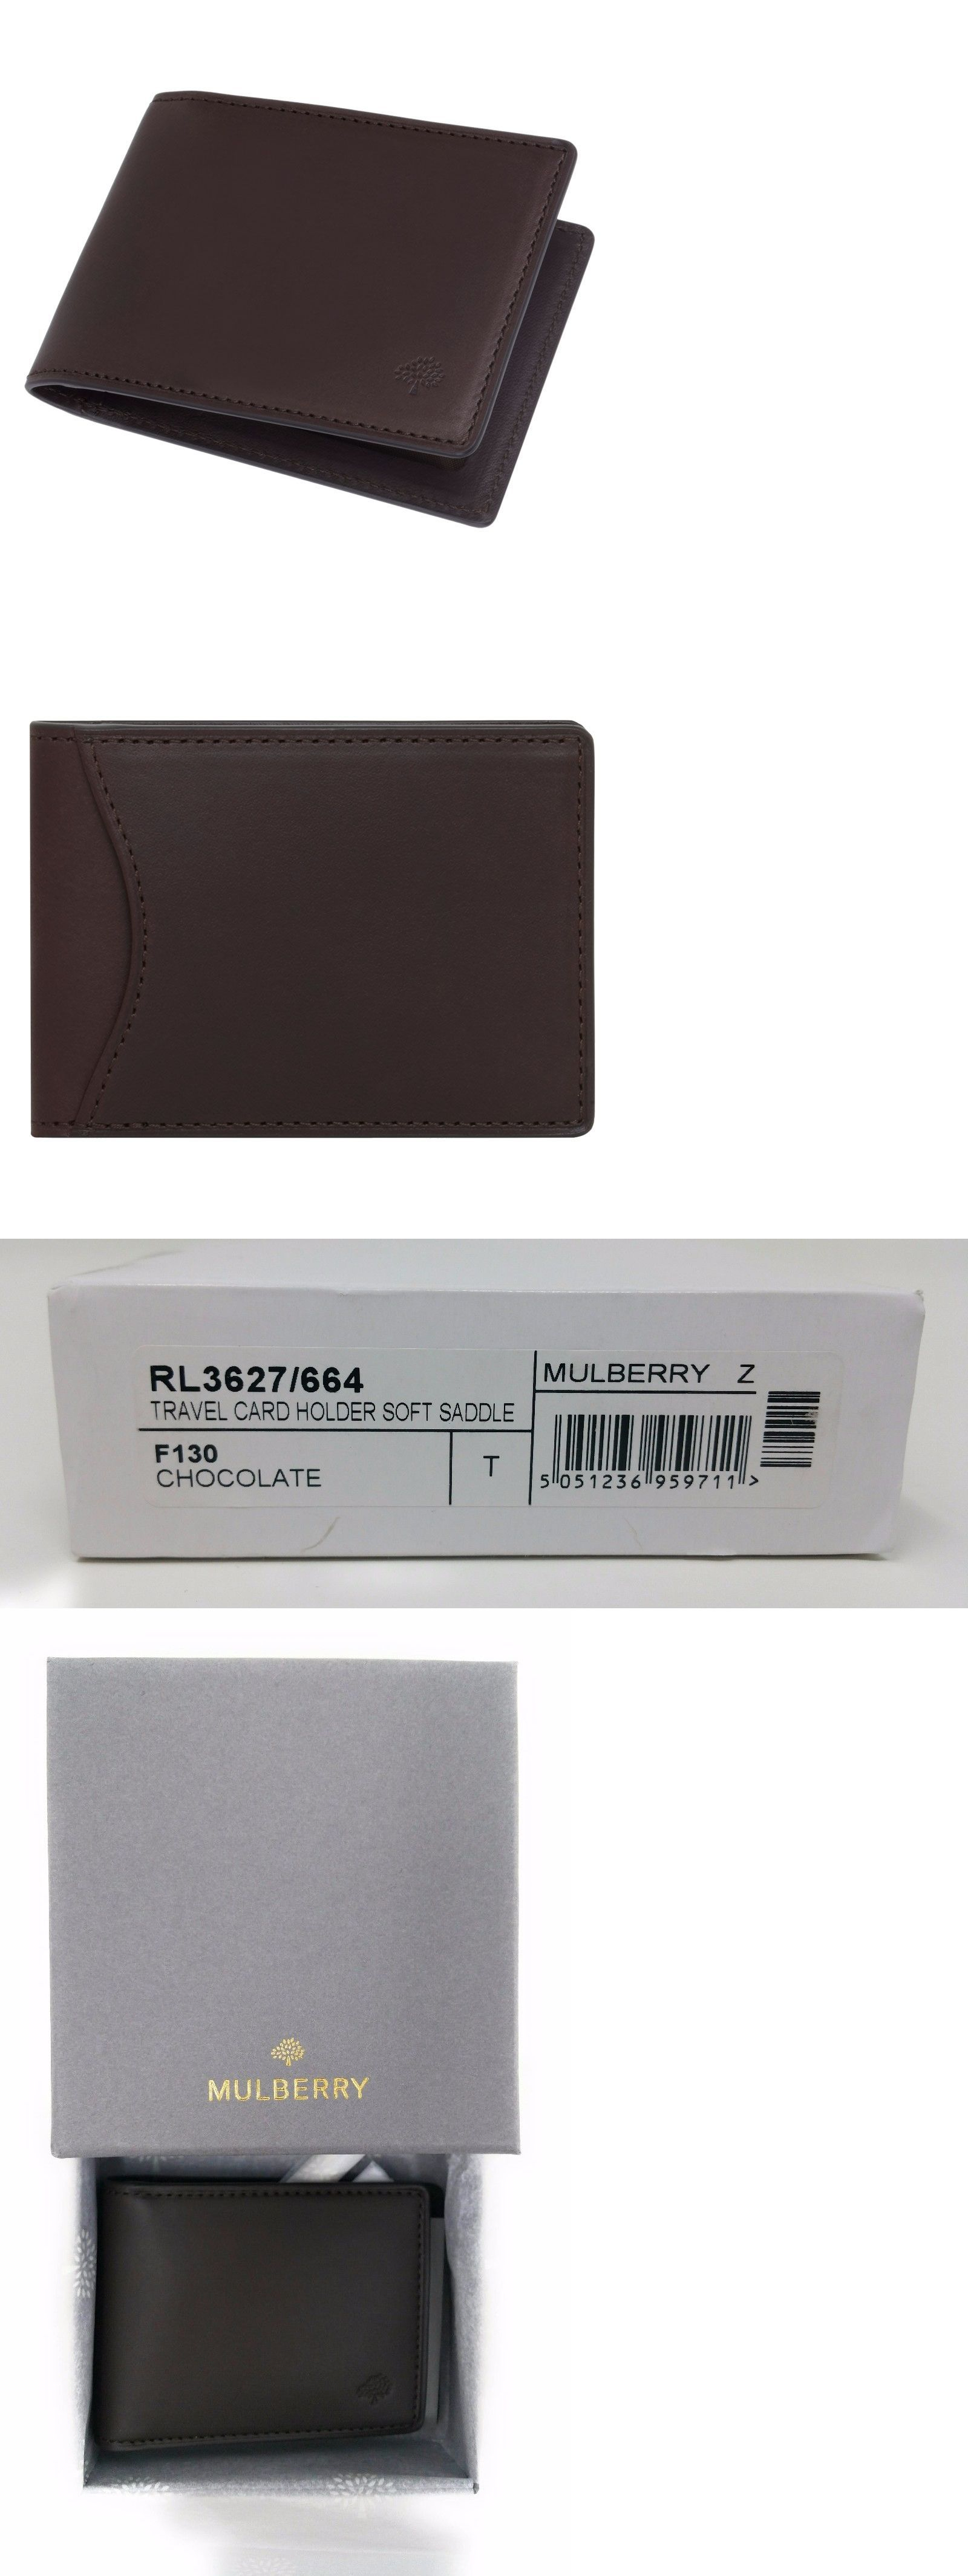 Business and credit card cases 105860 140 mulberry travel card business and credit card cases 105860 140 mulberry travel card holder soft saddle chocolate leather reheart Gallery